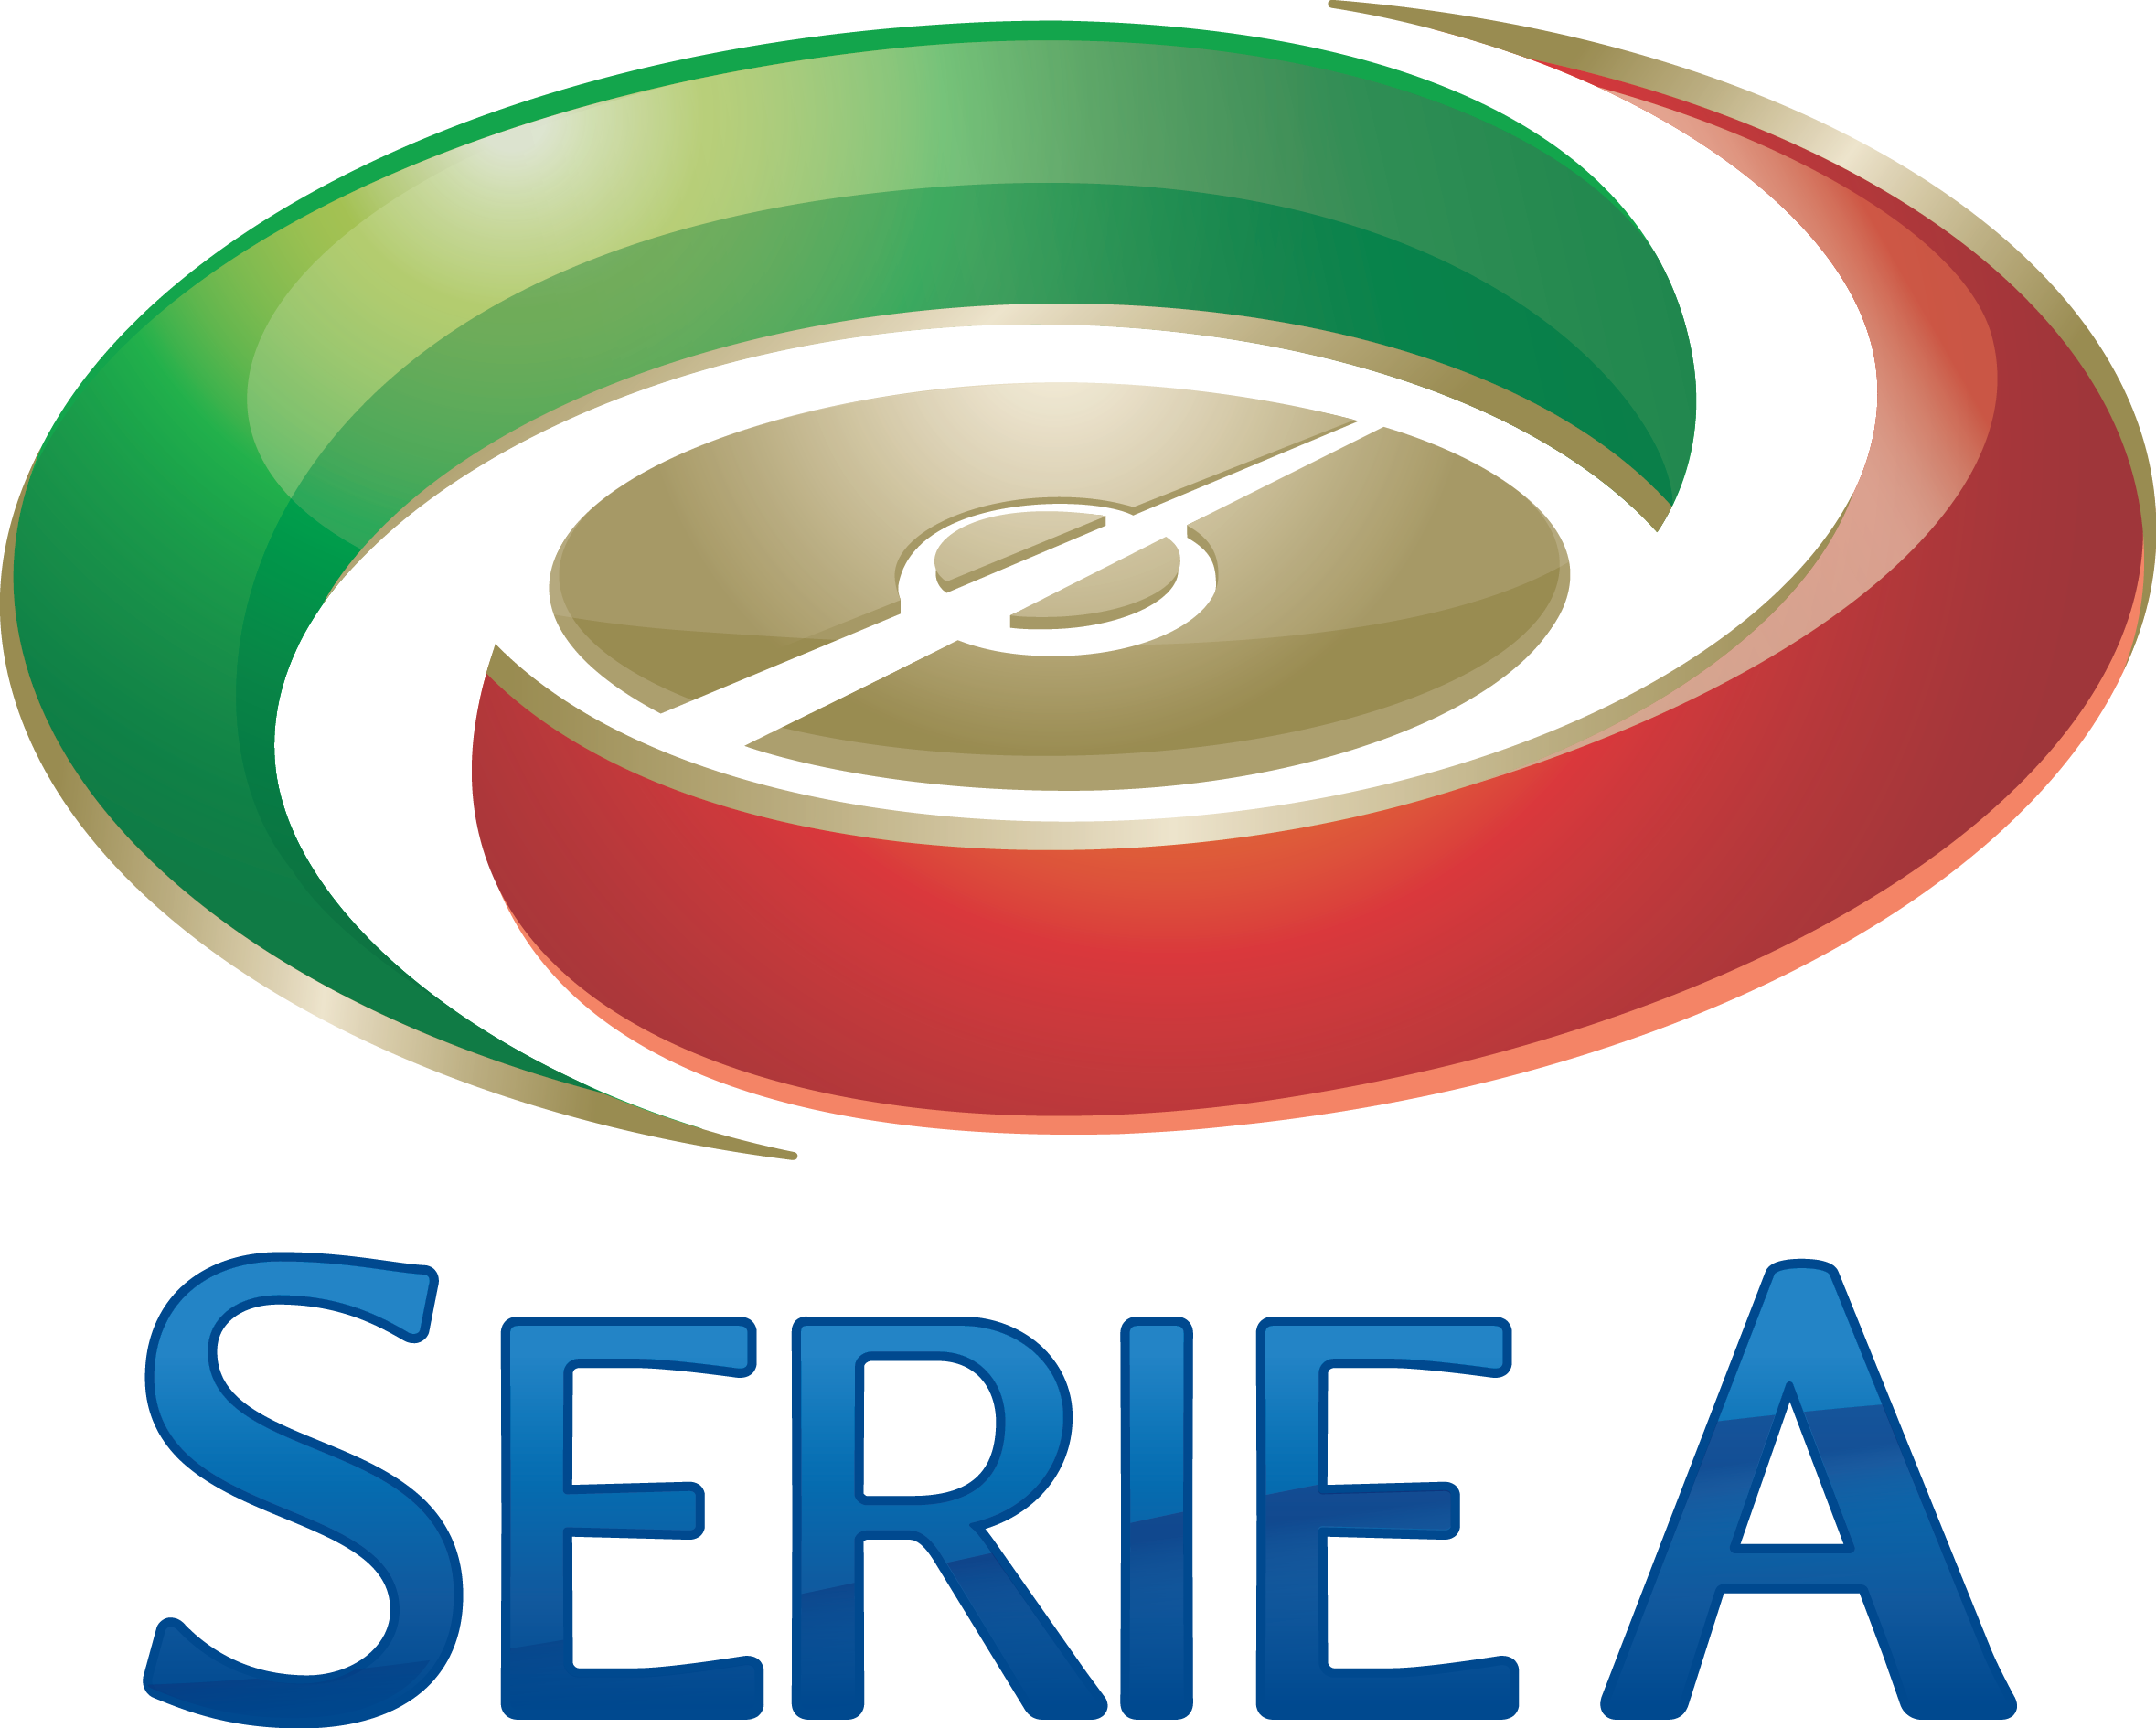 Udinese vs Empoli 1-2 All goals and highlights 19/09/2015